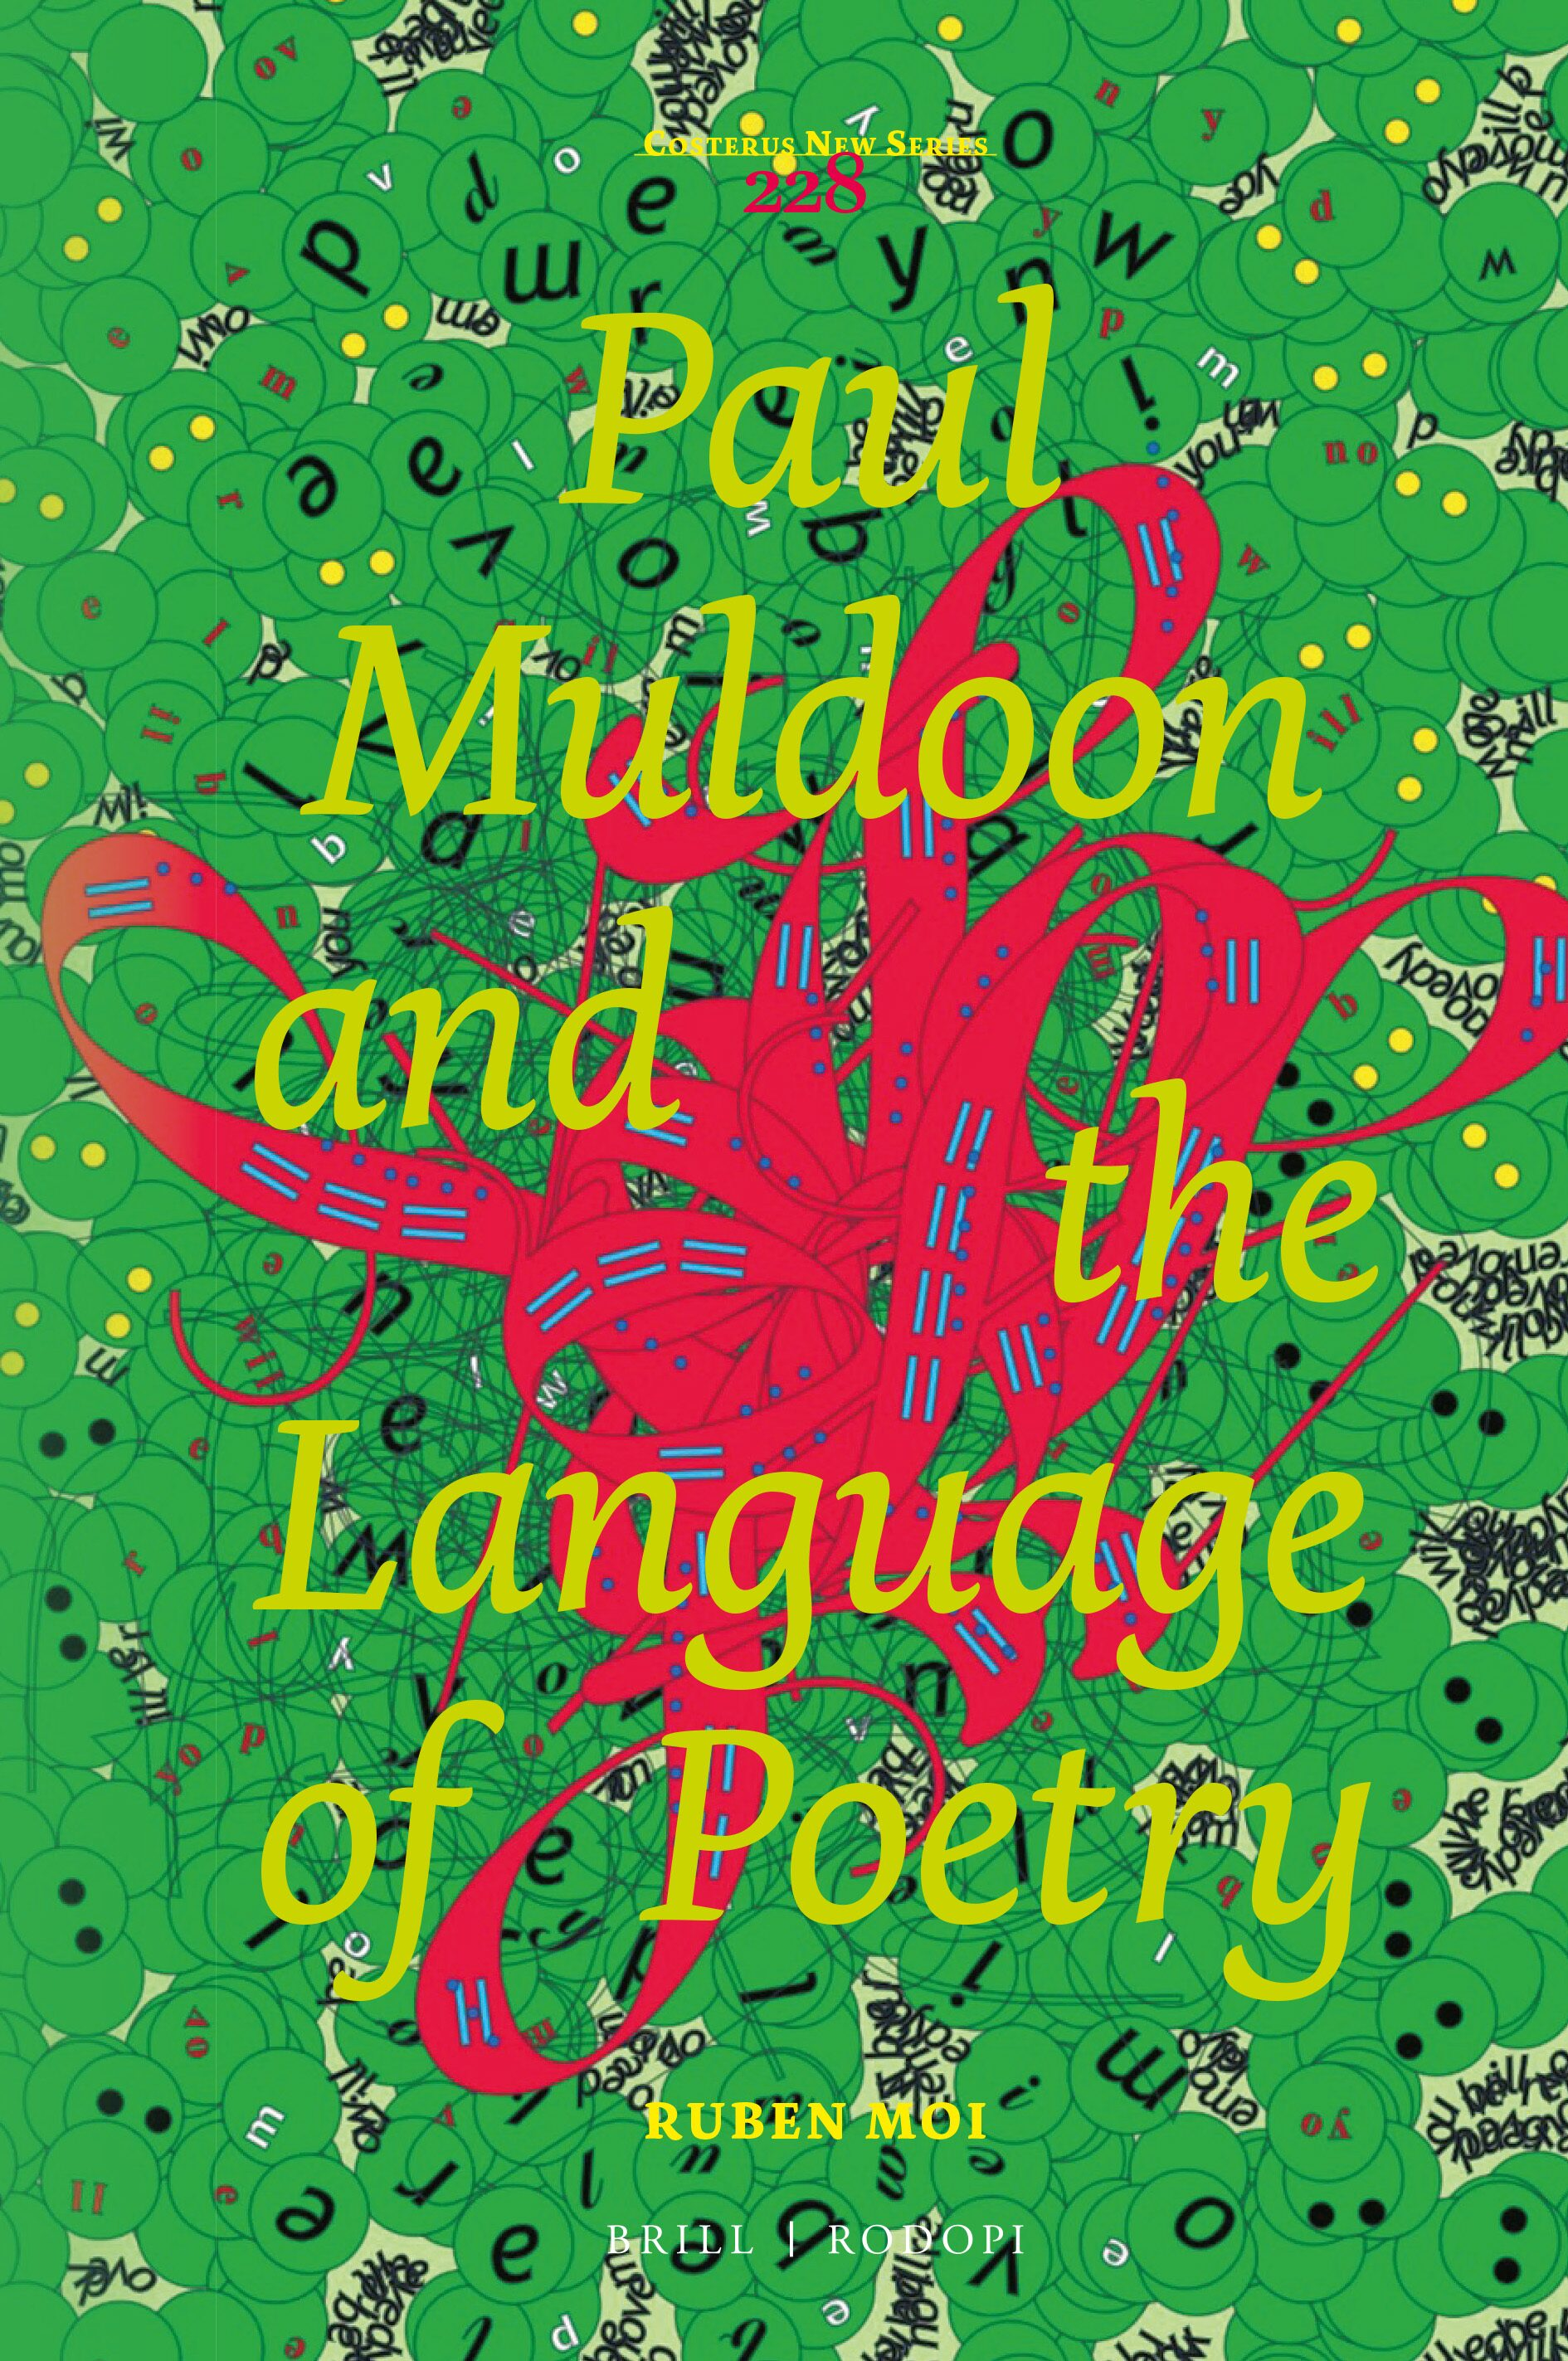 Anal Rapt mules in: paul muldoon and the language of poetry